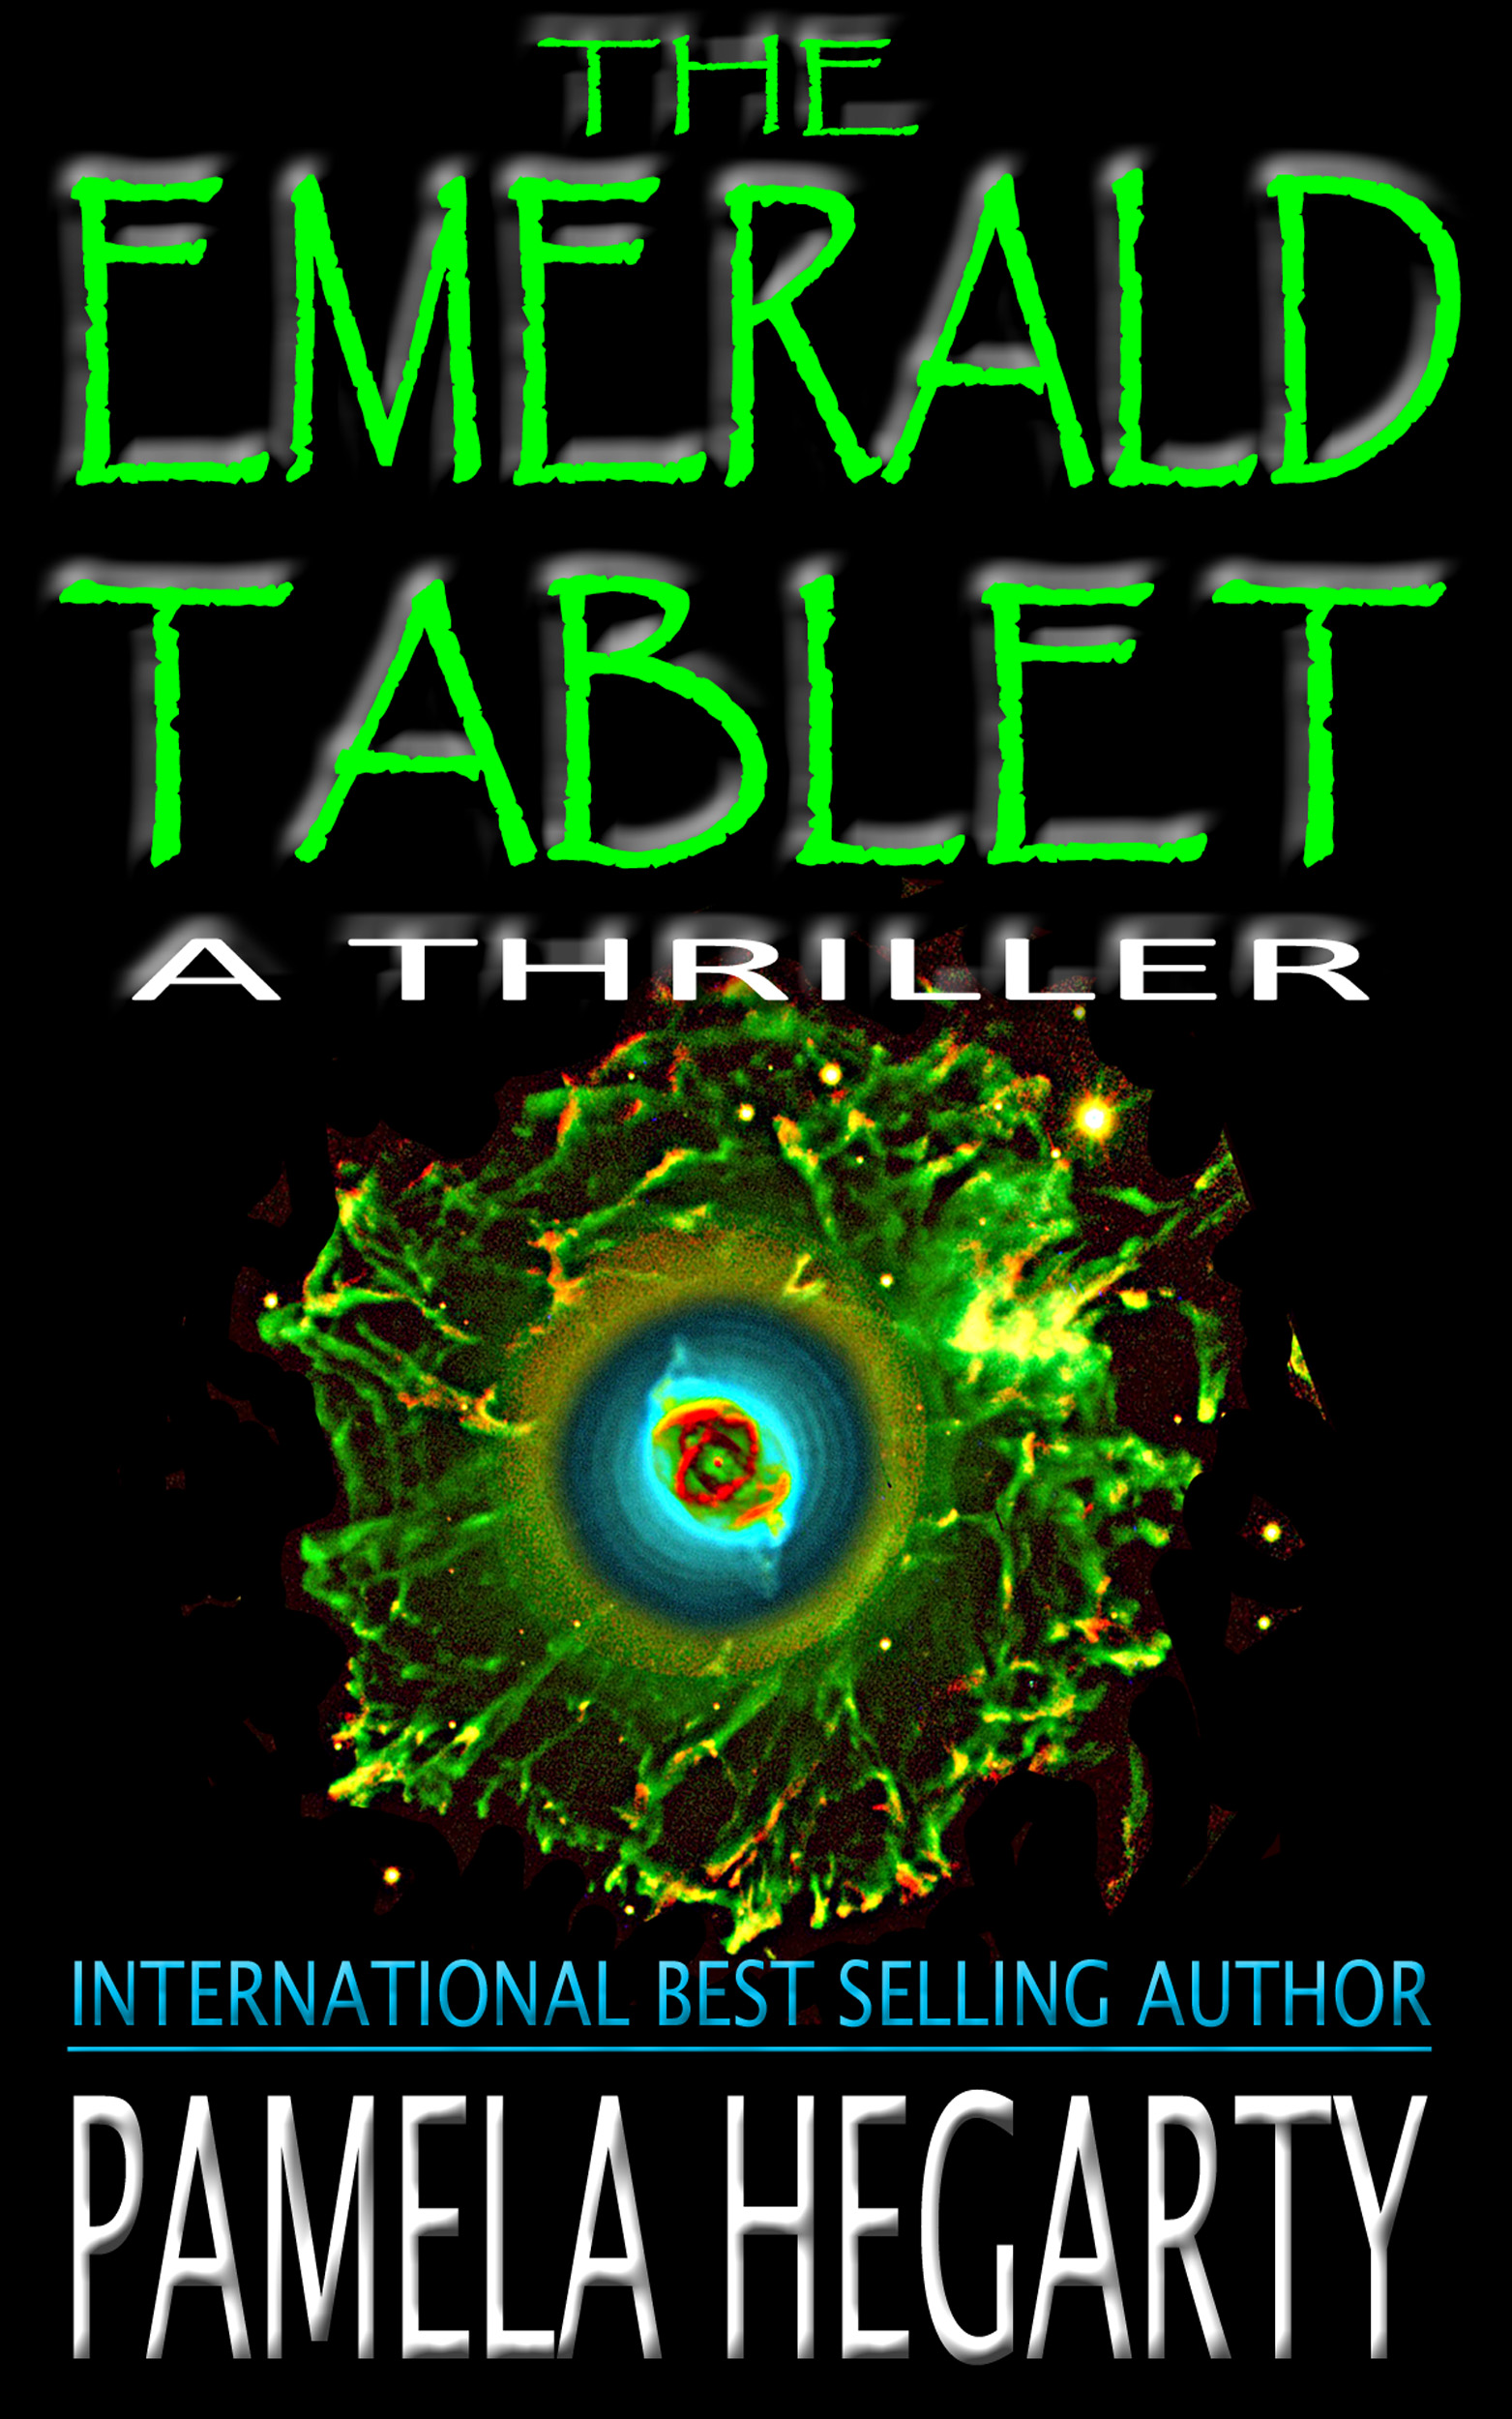 """The Emerald Tablet: A Thriller"" combines history, science"